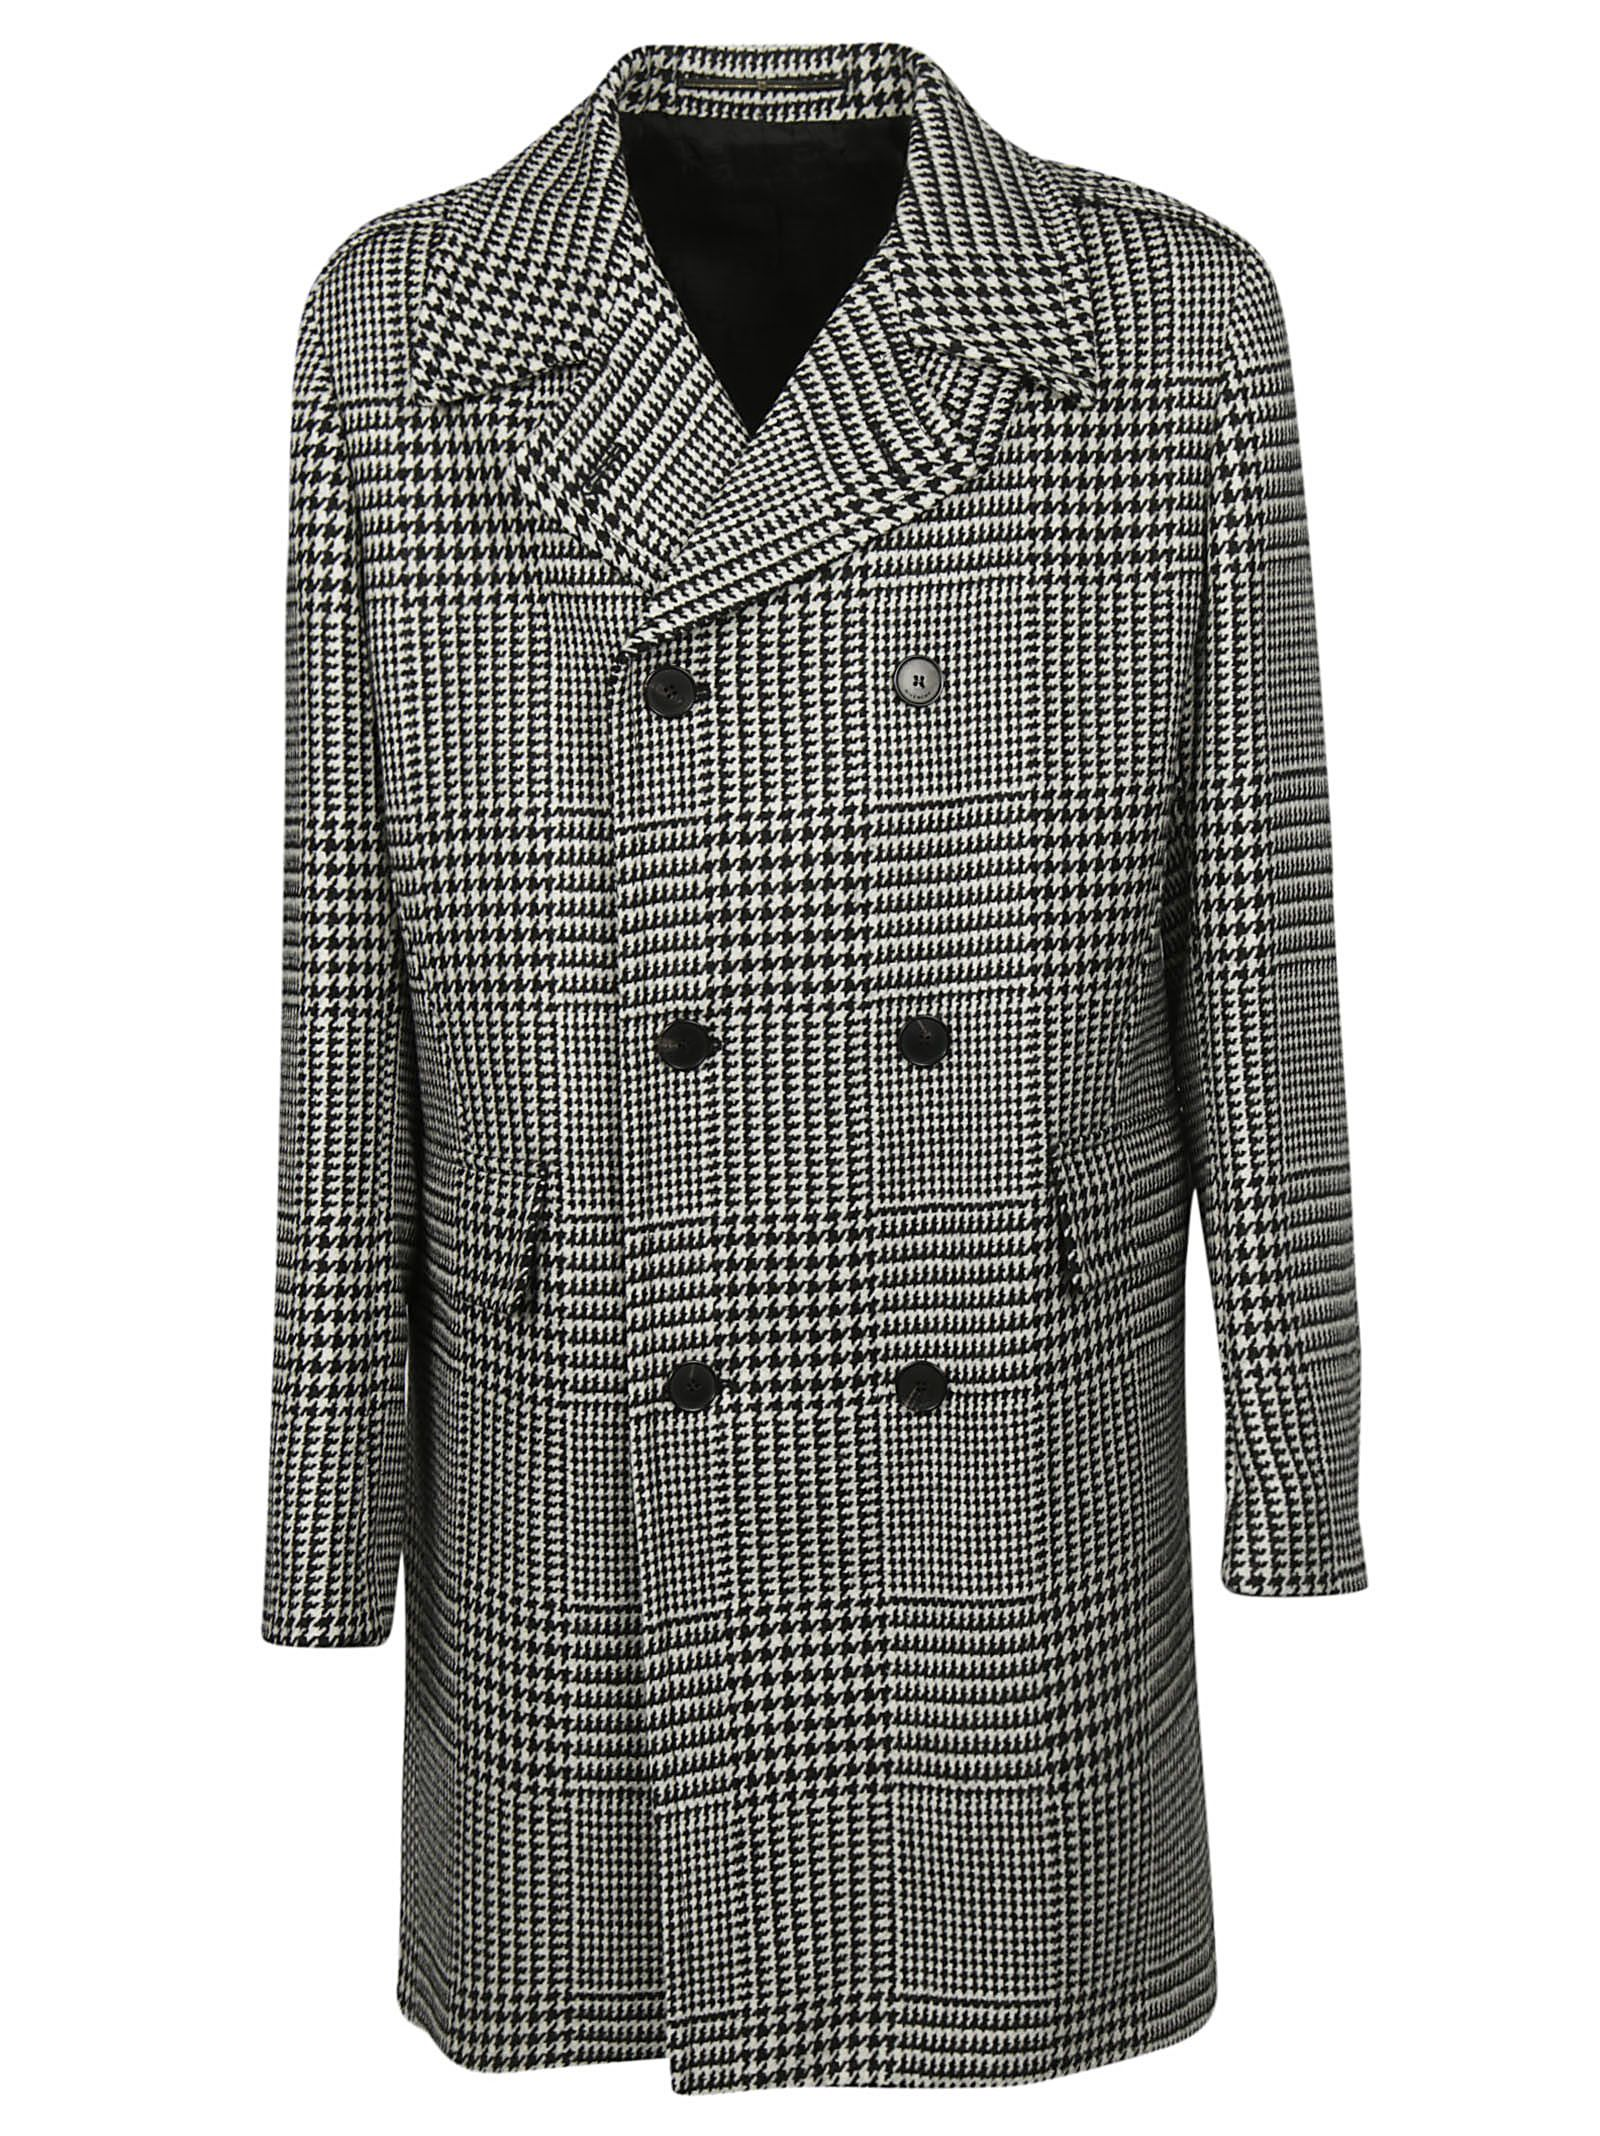 44af52c378d7 Givenchy Givenchy Houndstooth Double Breasted Coat - Black ...